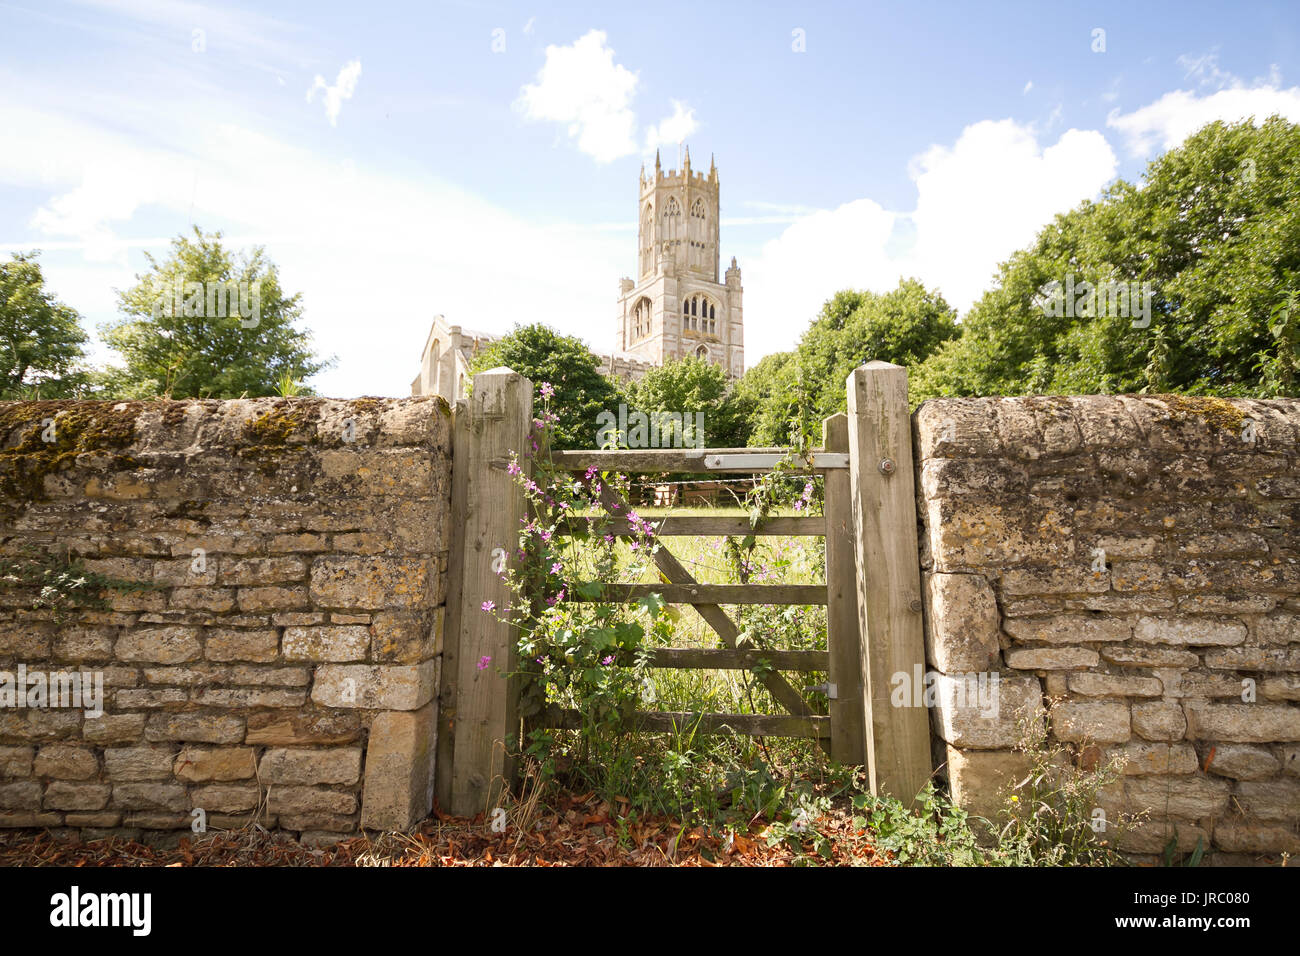 Church of St.Mary and all Saints centre of Fotheringhay - Stock Image